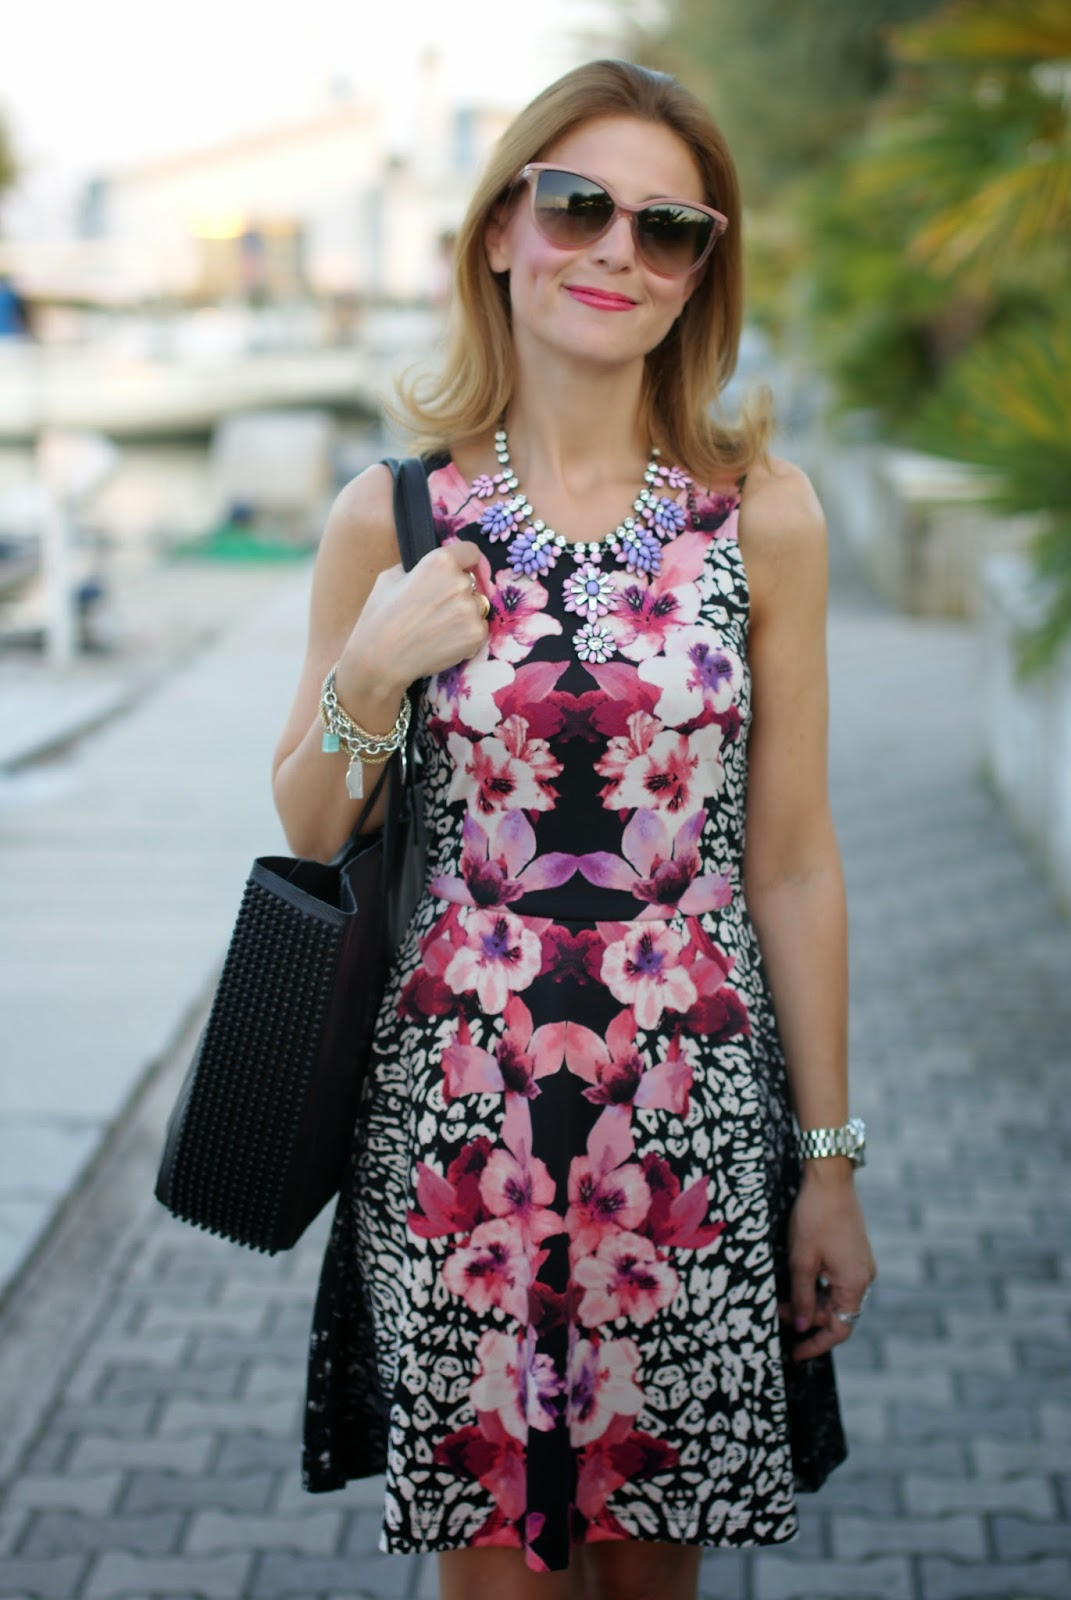 barmat bag, stella mccartney sunglasses, h&m tropical dress, low cost outfit, Fashion and Cookies, fashion blogger